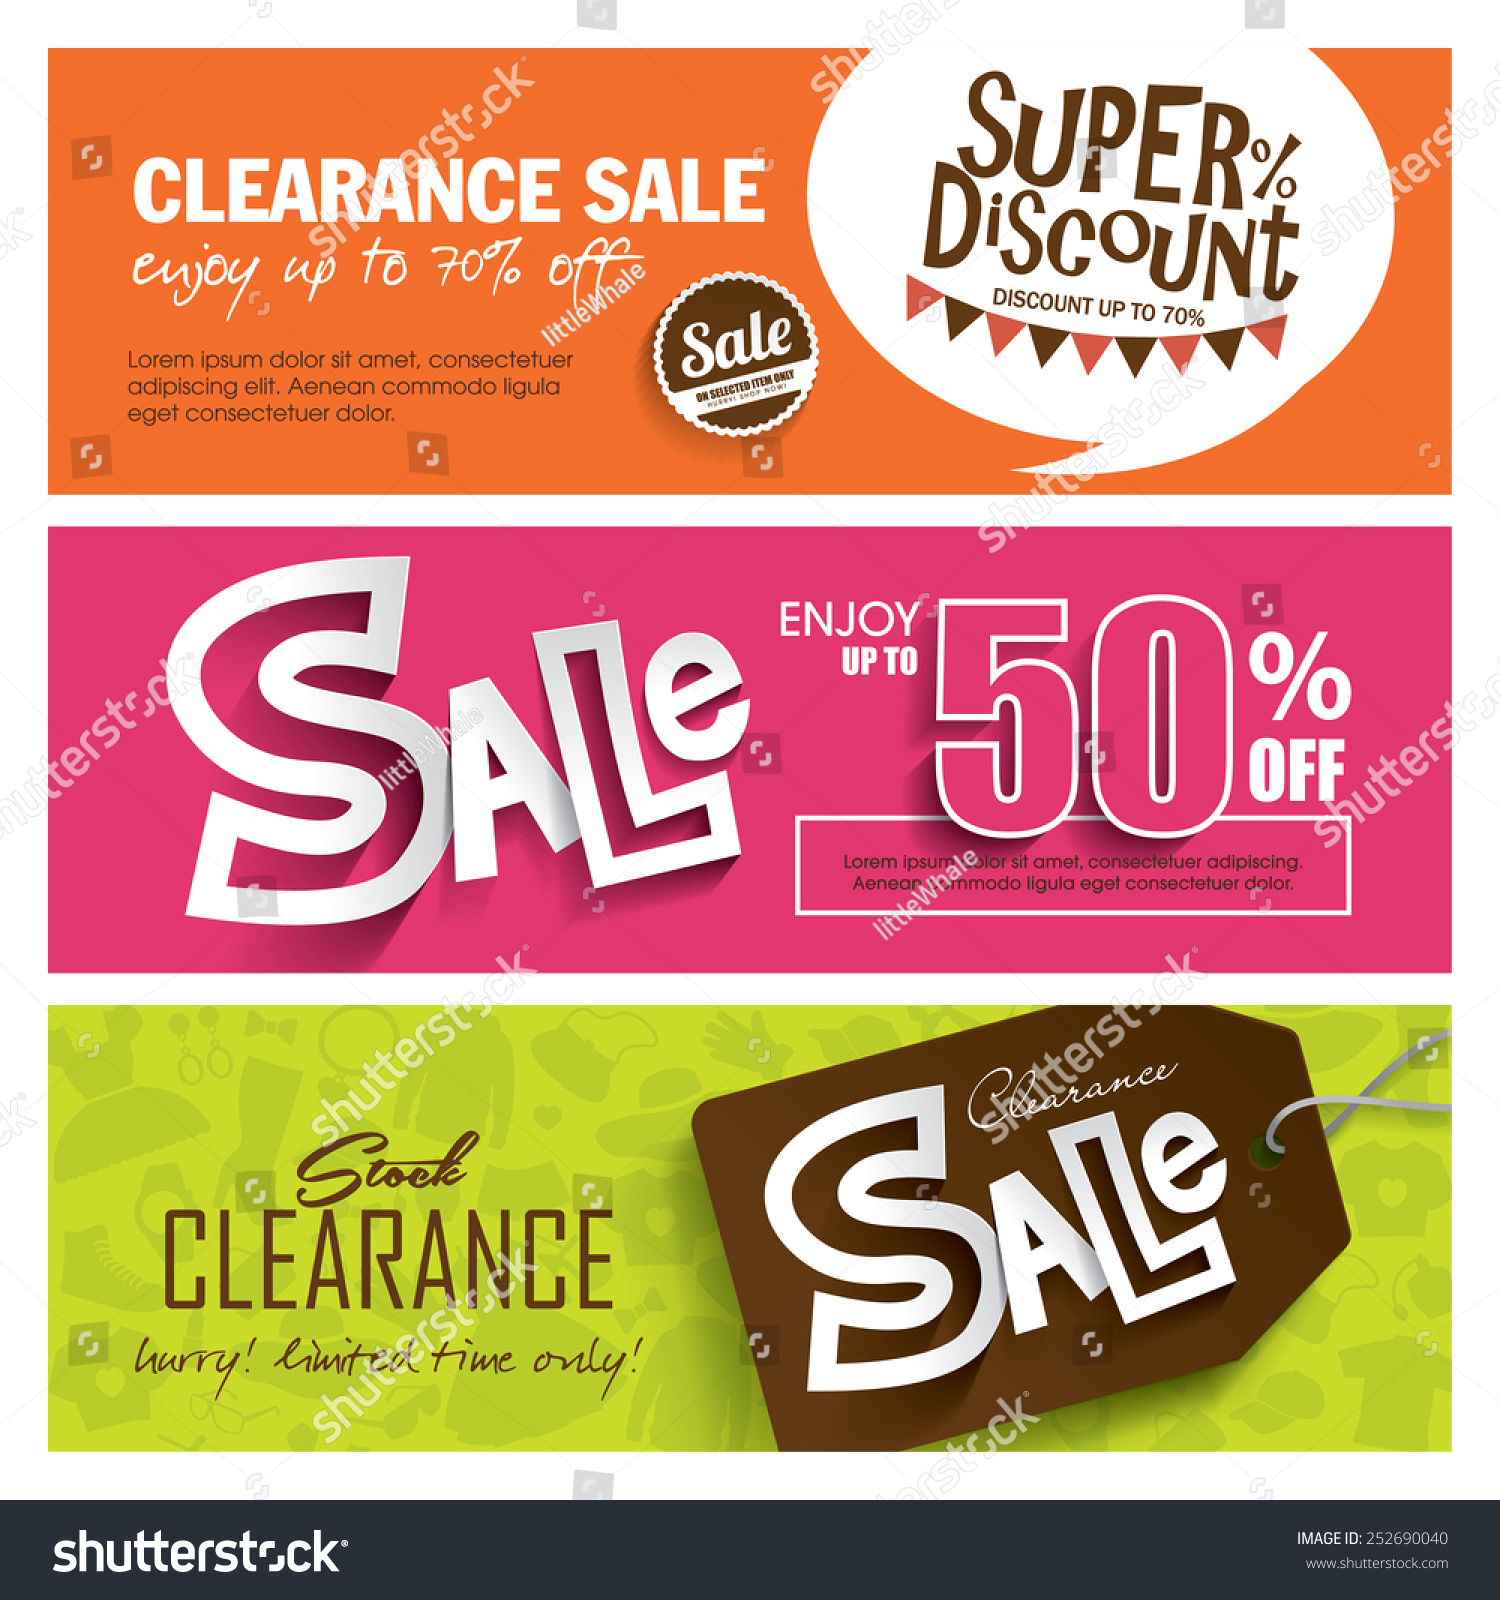 Sale Banners Design Stock Vector 252690040 - Shutterstock